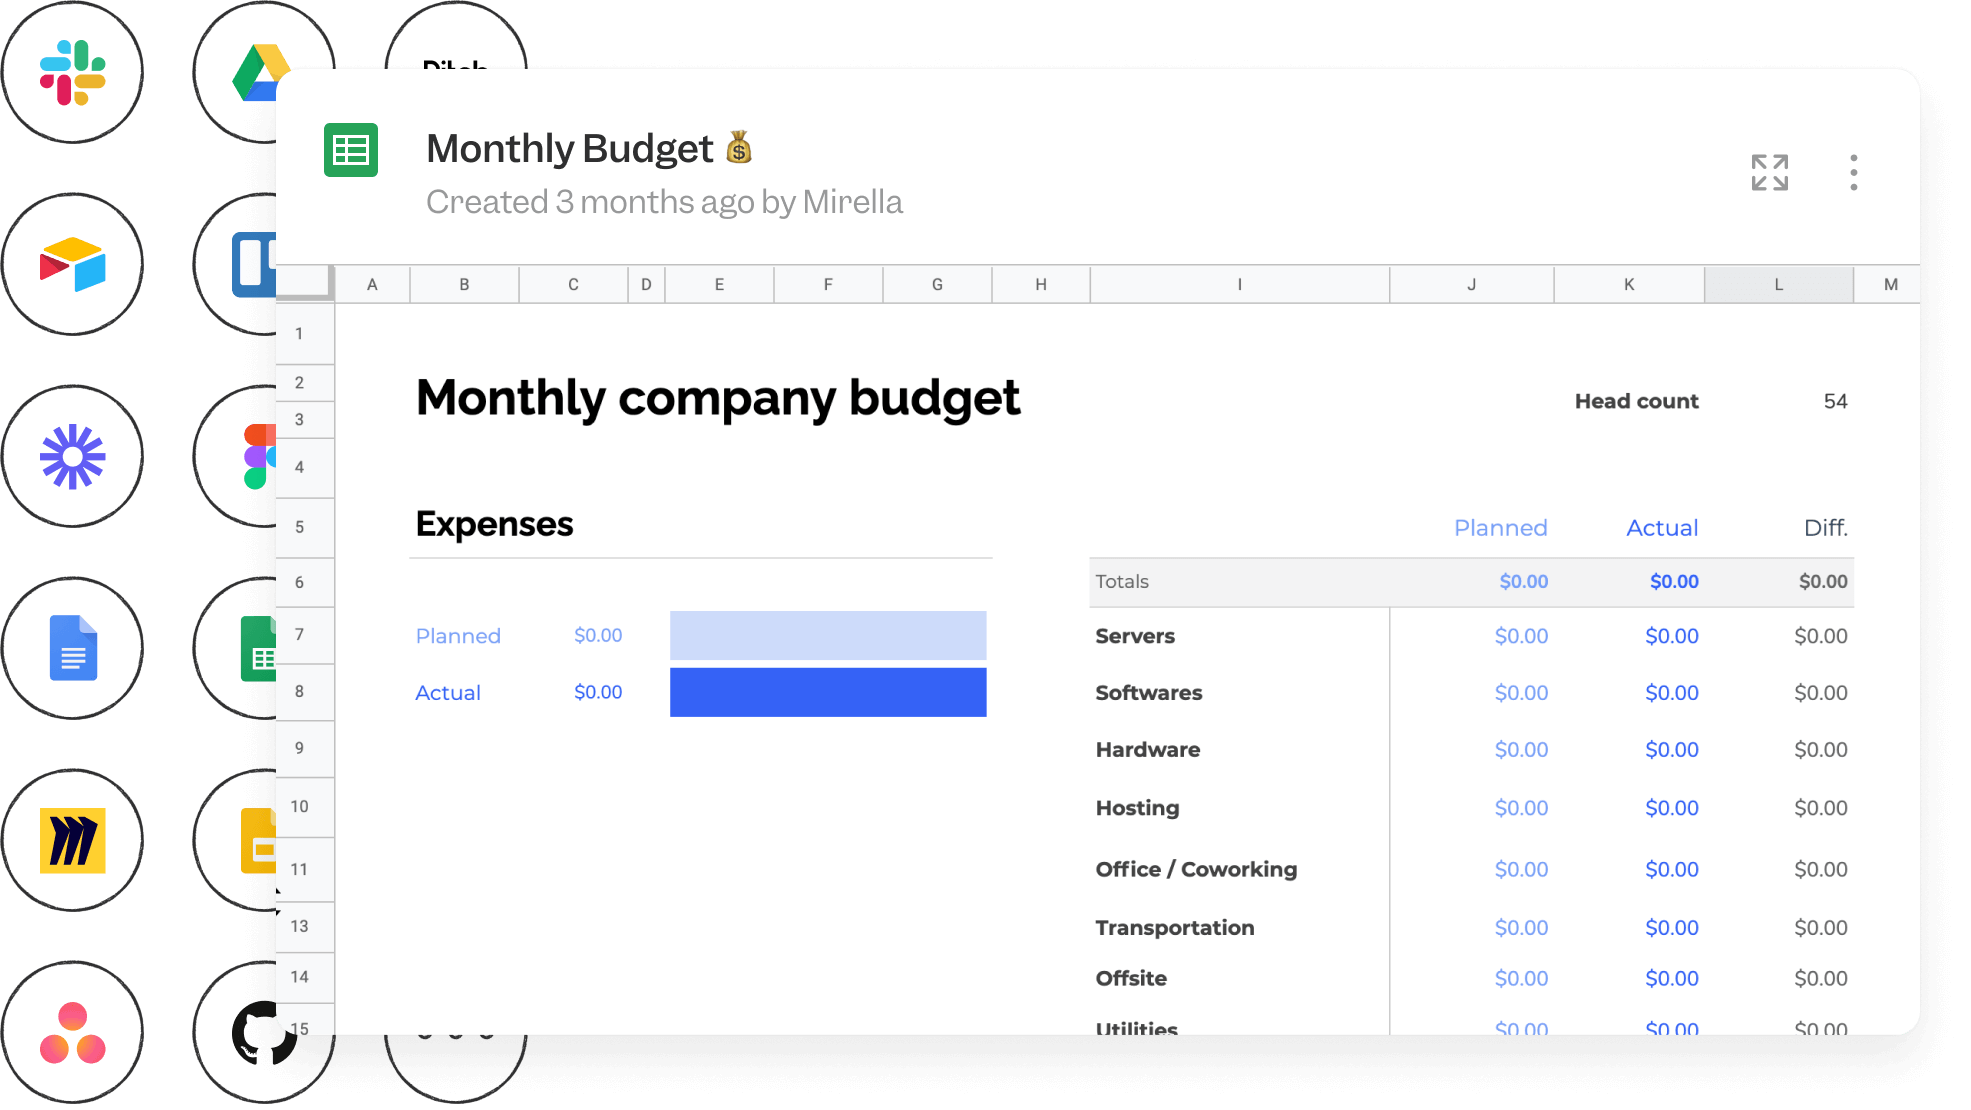 Monthly Budget spreadsheet against a backdrop of icons from tools that integrate with Slite including Slack, Google Drive, Airtable, Loom, Asana Github, Miro